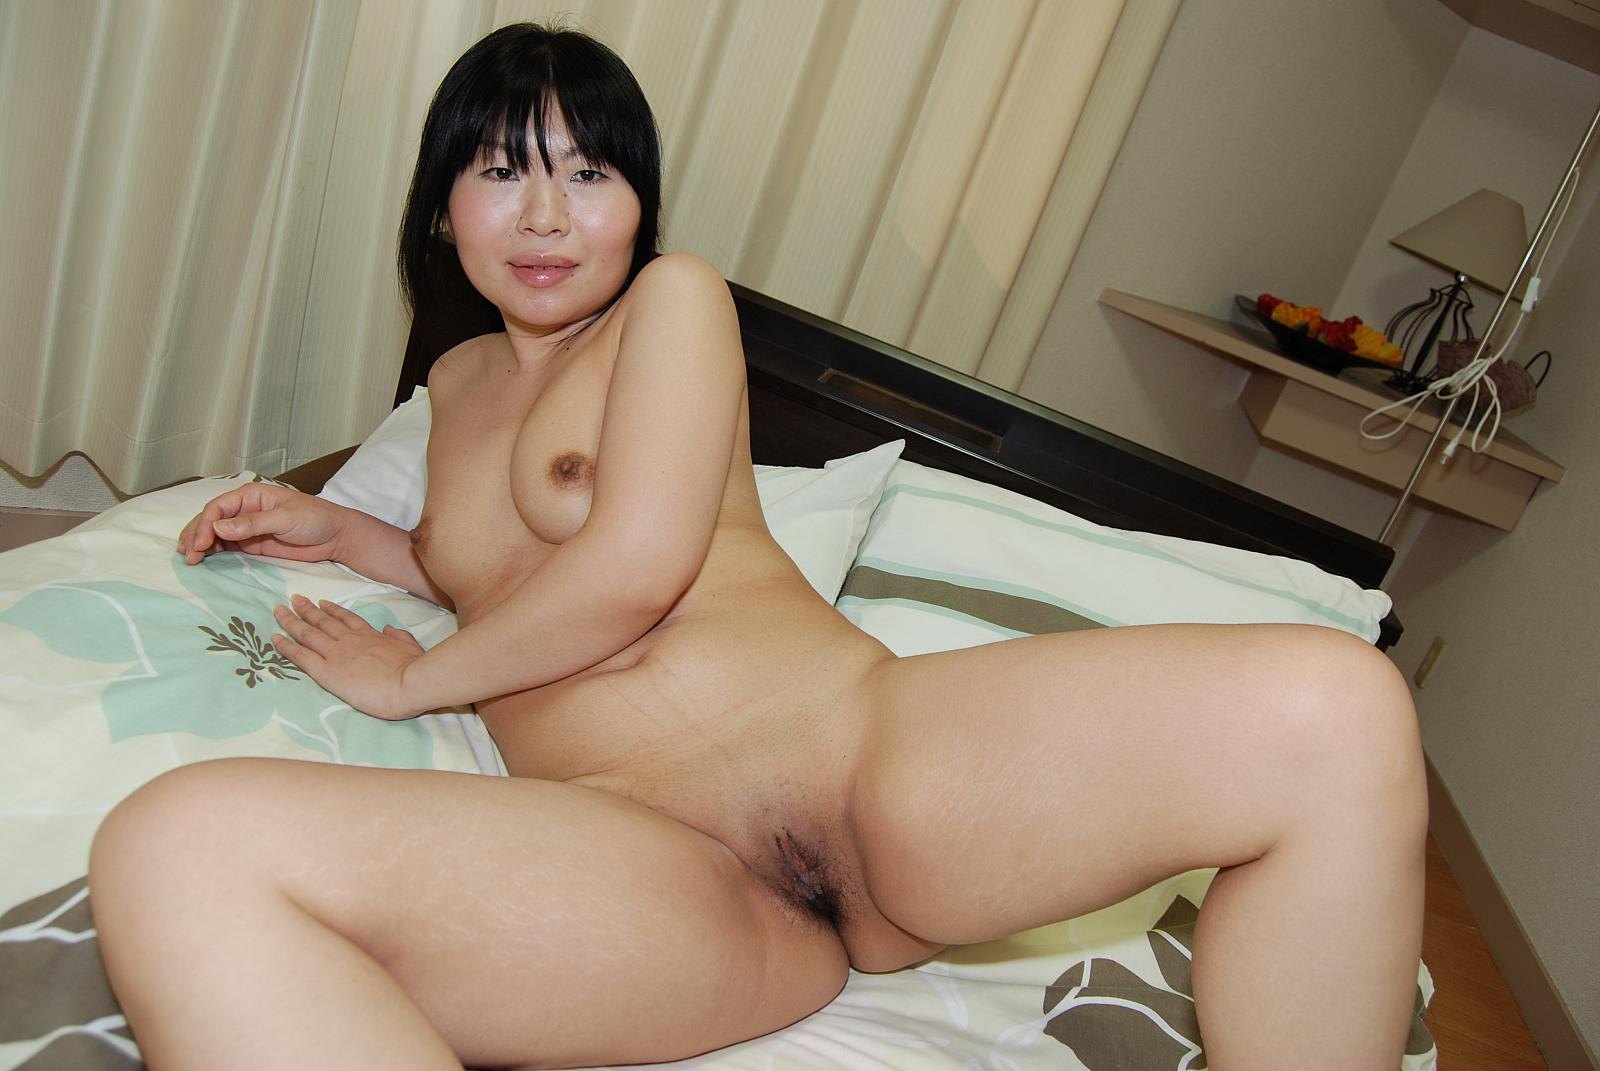 Dick Rubbing Pussy Japanese